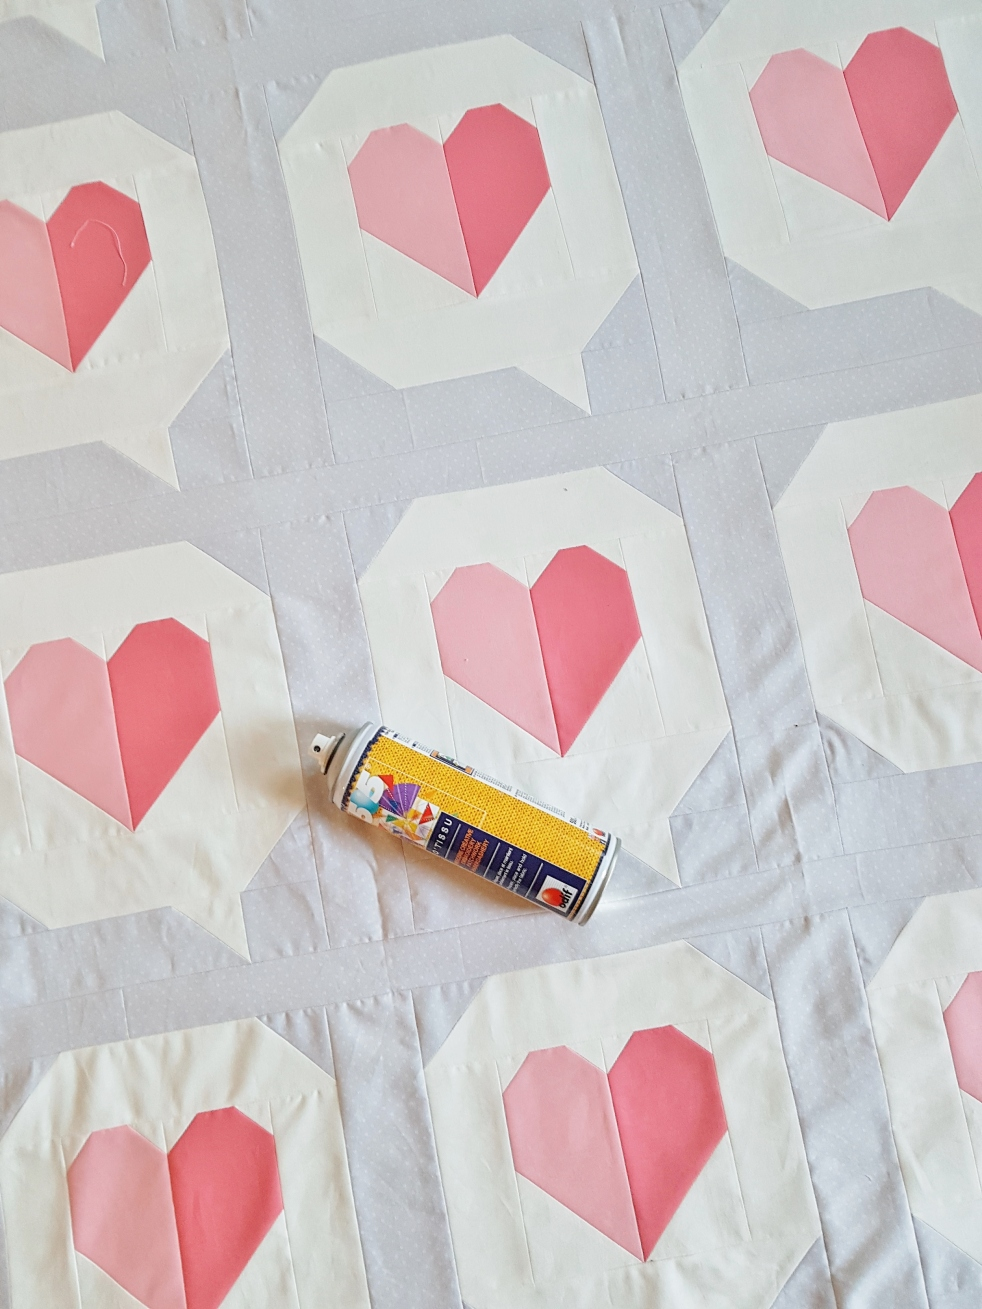 I heart you quilt top.... how do you quilt yours?